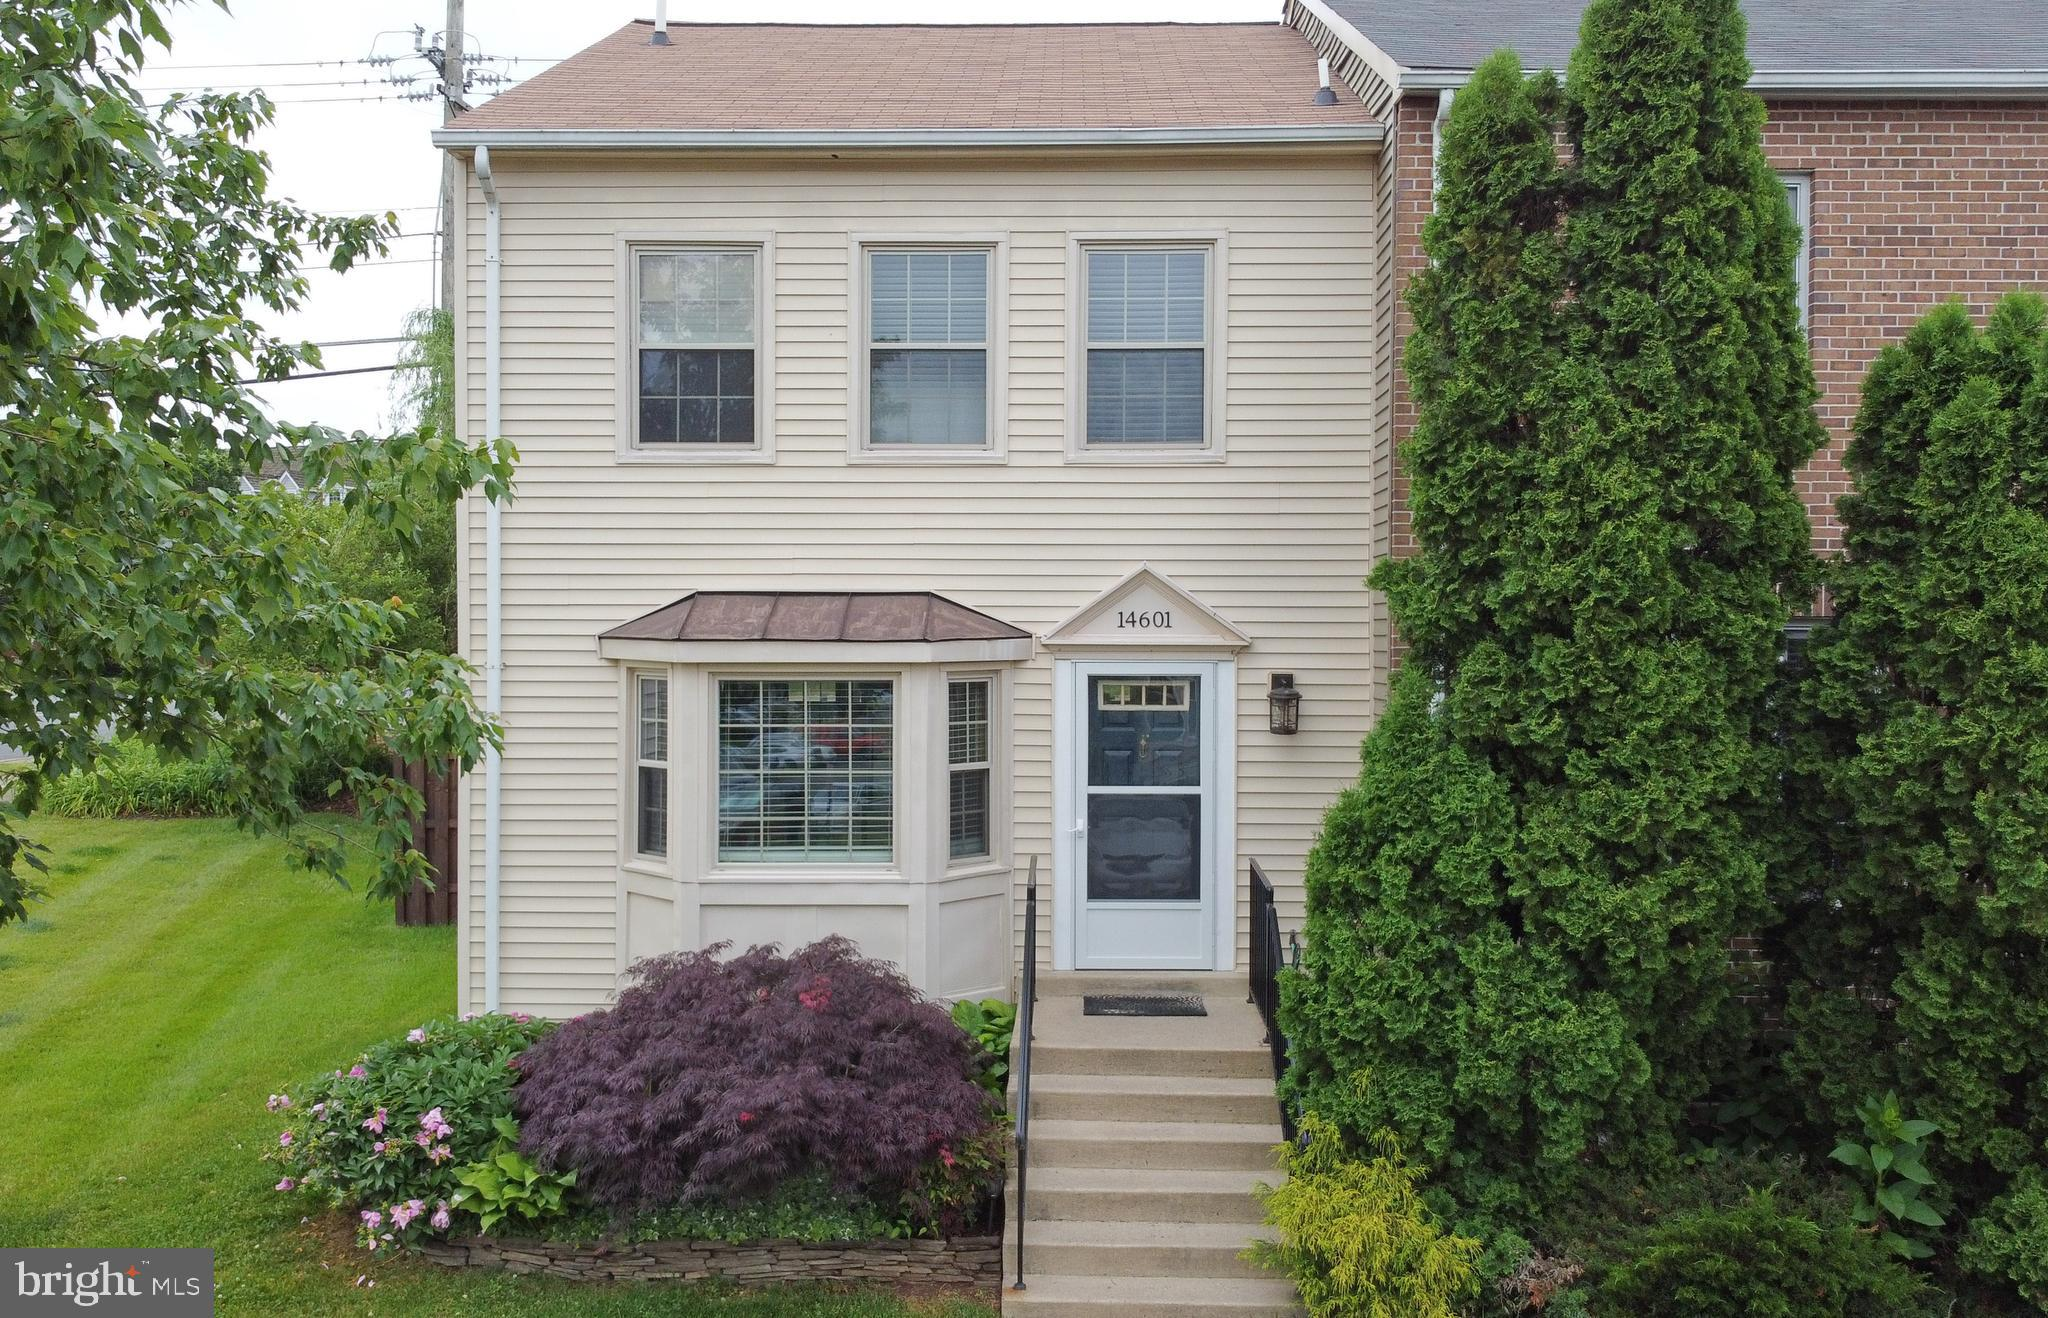 """Well maintained end unit townhouse located in desirable, commuter friendly neighborhood of Stonehenge in  Centreville.  Just a few minutes drive to I66 & Rt28. Walking distance to Village Center Shopping Mall. This cozy townhouse features 2 master suites upstairs each with their own full bath. New roof, carpets & washer and dryer as of 2019. Tons of storage space in the basement, along with beautiful built in shelving along with a full bath. Backyard is stunning - beautiful fenced in back yard, has a back porch with built in seating to enjoy  all summer long. Kitchen was updated in 2013 & remains in pristine condition.  Deer Park elementary, Stone Middle & Westfield HS are all close by.  This home comes with backyard grill & 42"""" wall mounted television."""